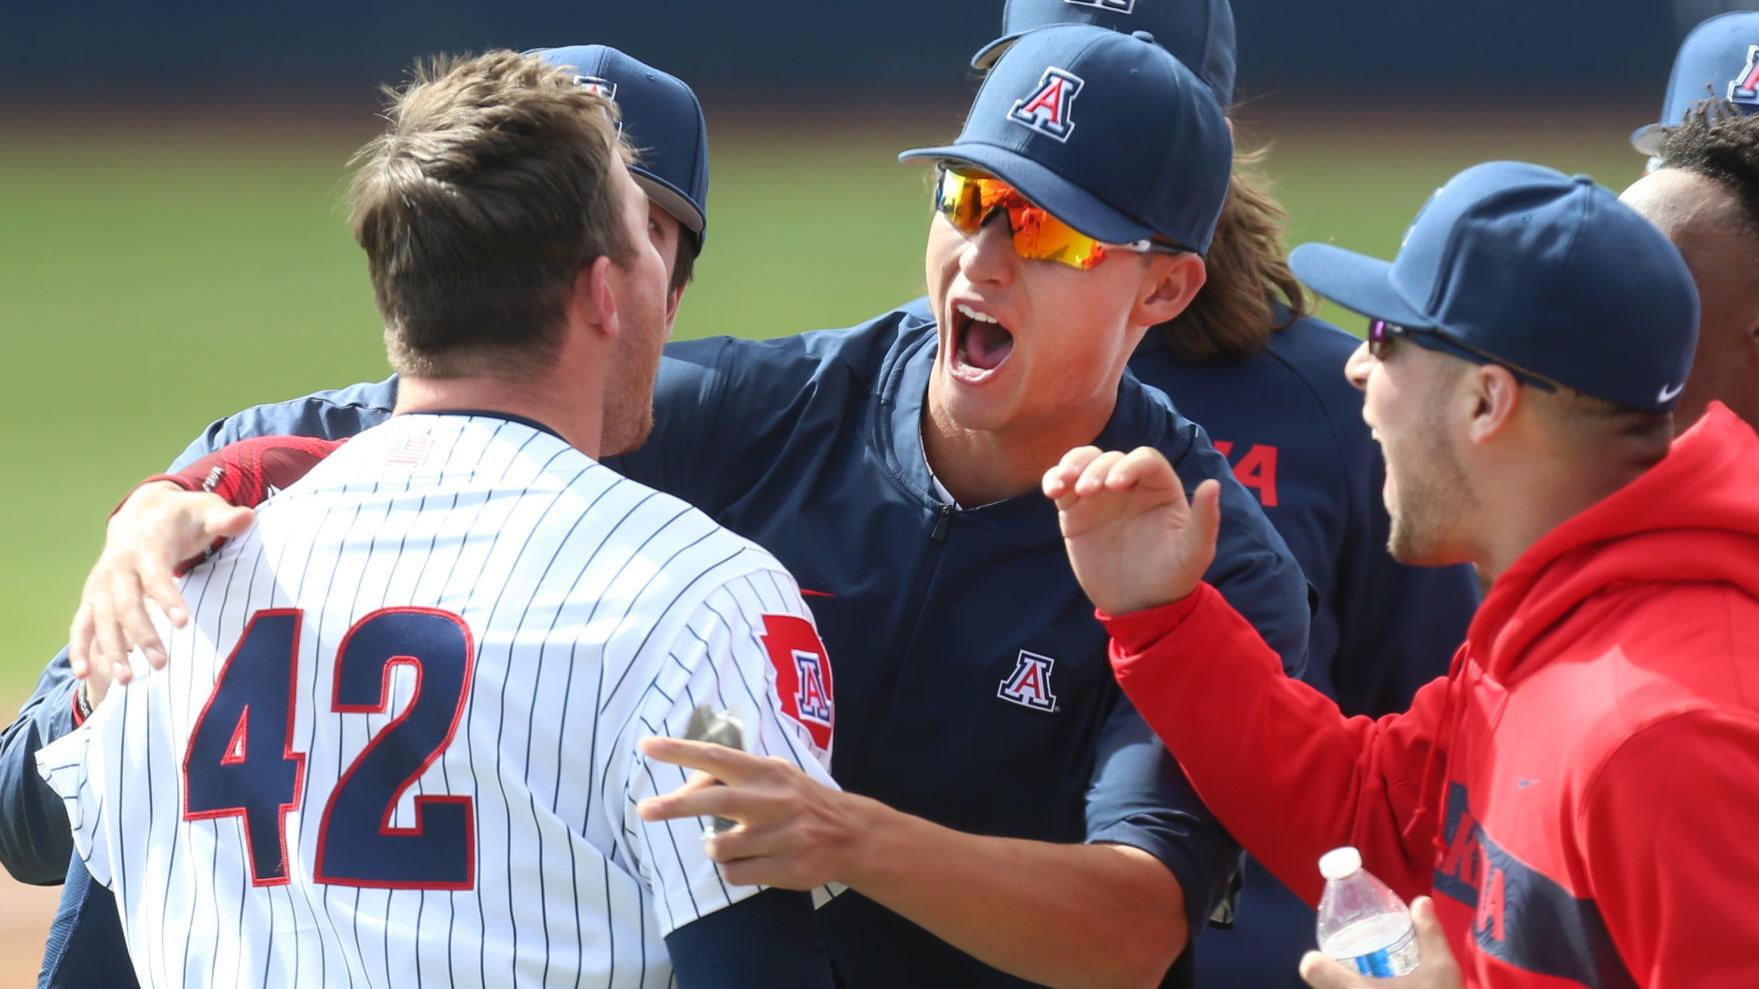 Arizona Wildcats' Matt Fraizer takes off after altering his swing plane